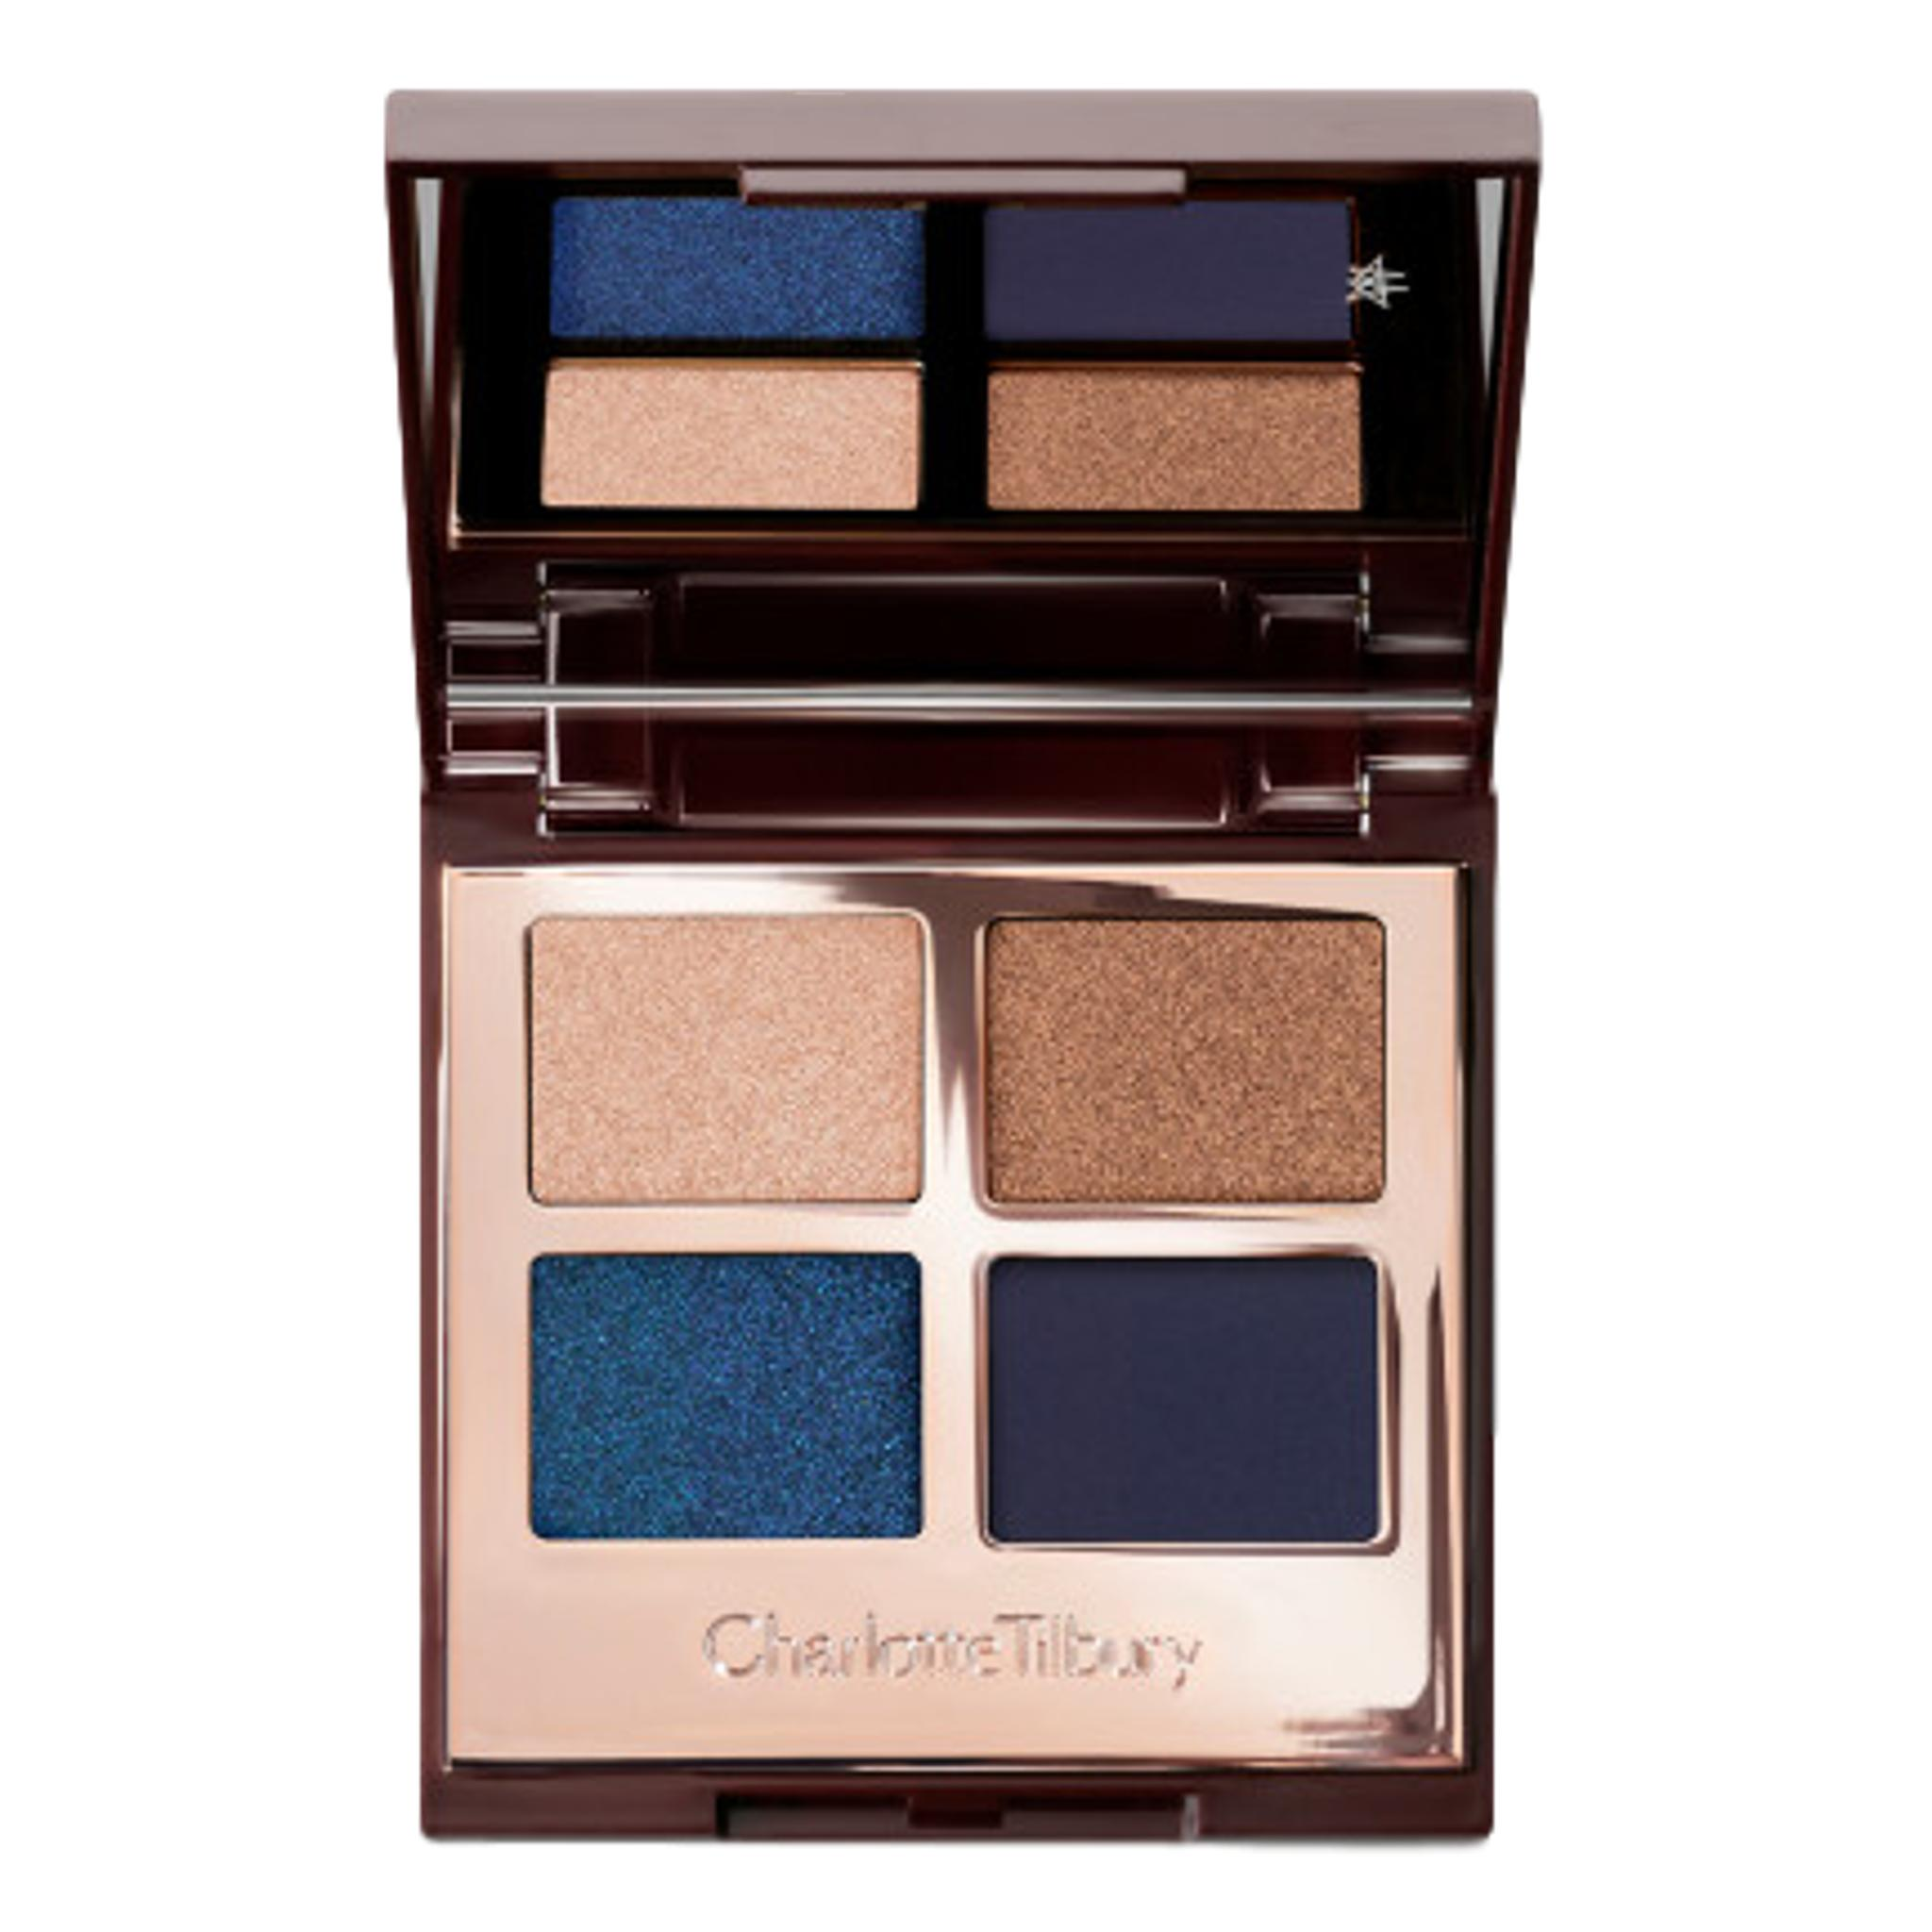 Charlotte Tilbury Luxury Eyeshadow Palette - Super Blue, eyeshadow palette, London Loves Beauty